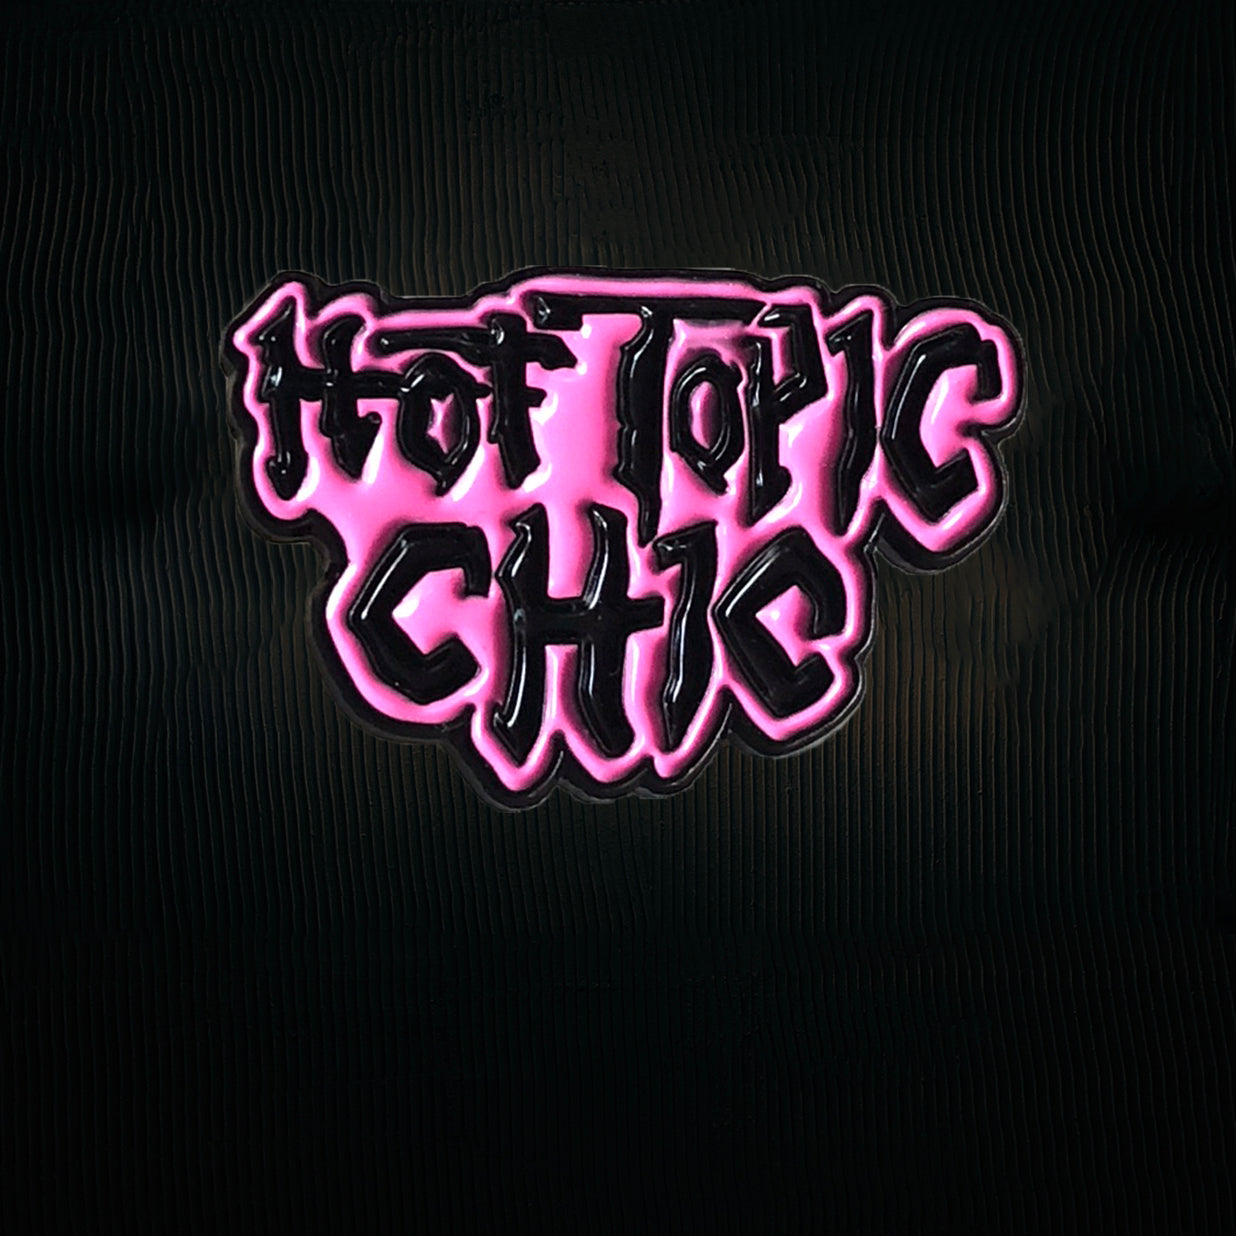 'Hot Topic Chic' Pin